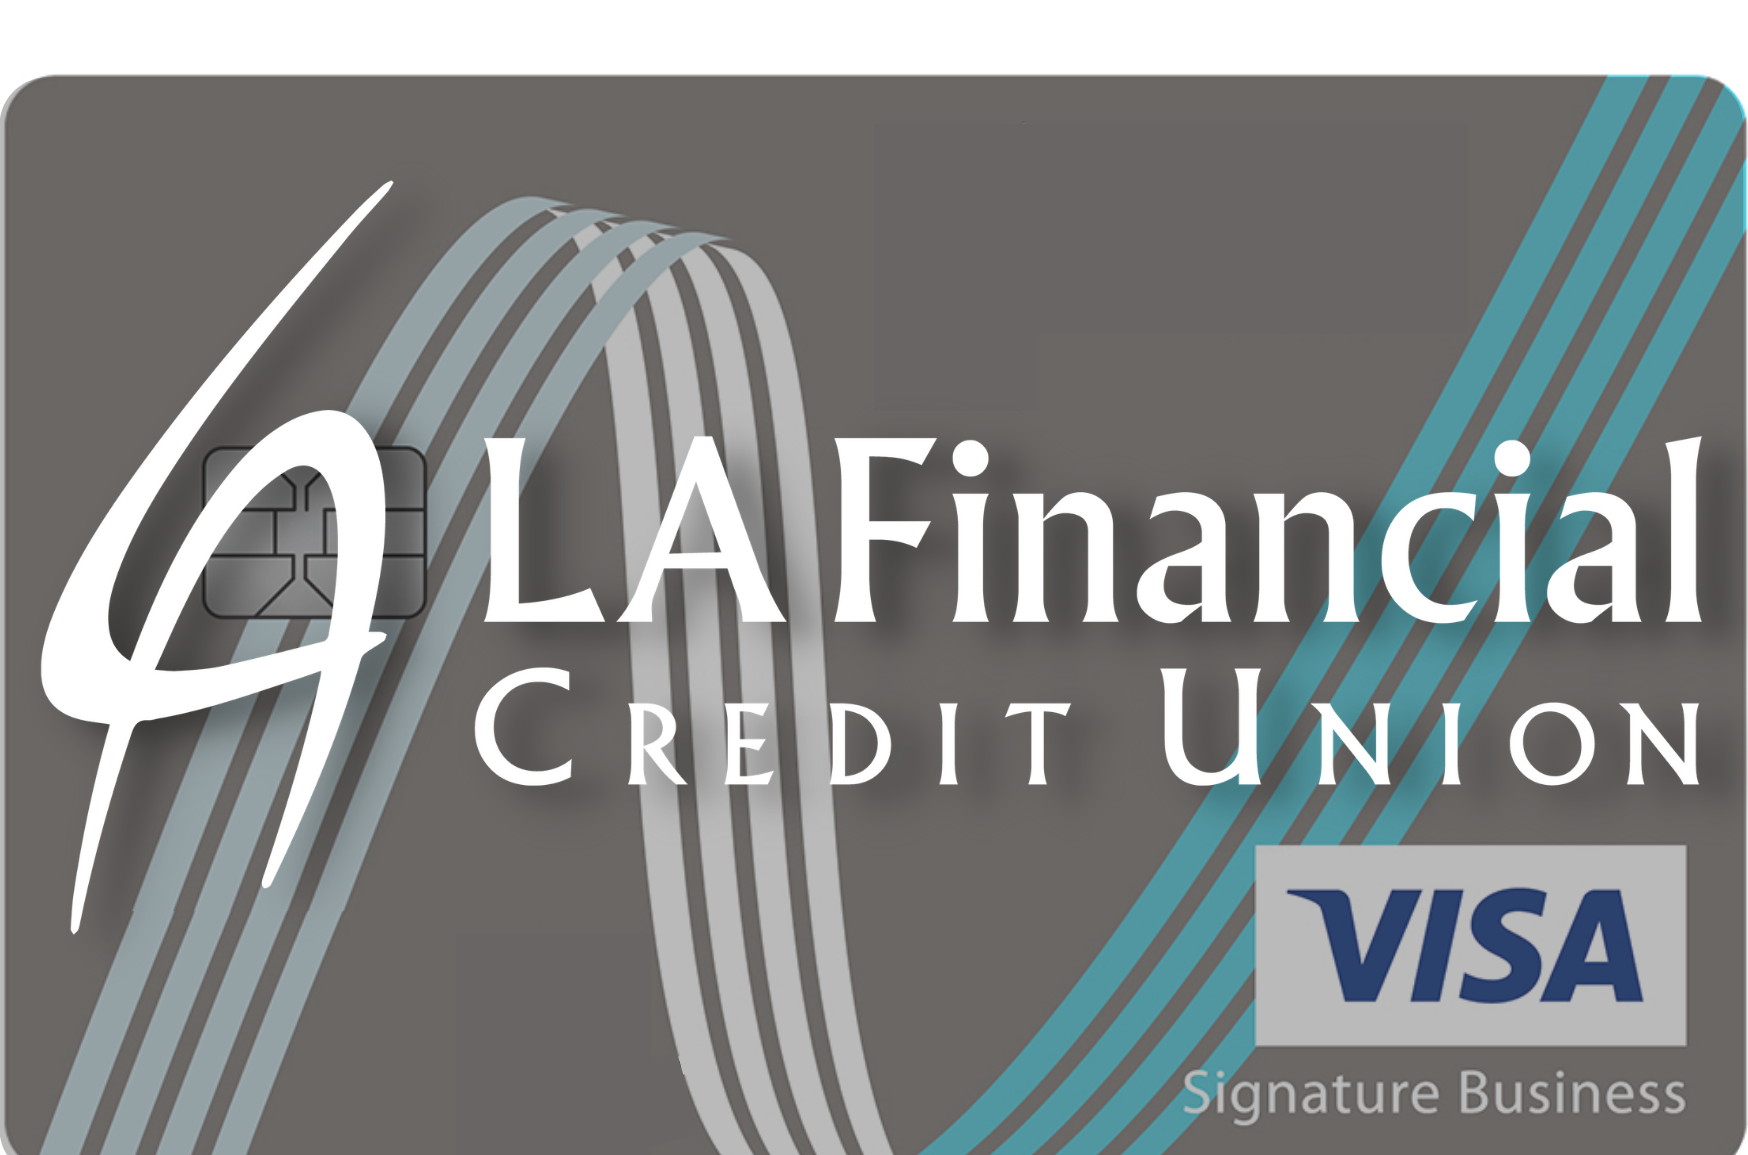 LA Financial Credit Union Credit Card Brand Apply here